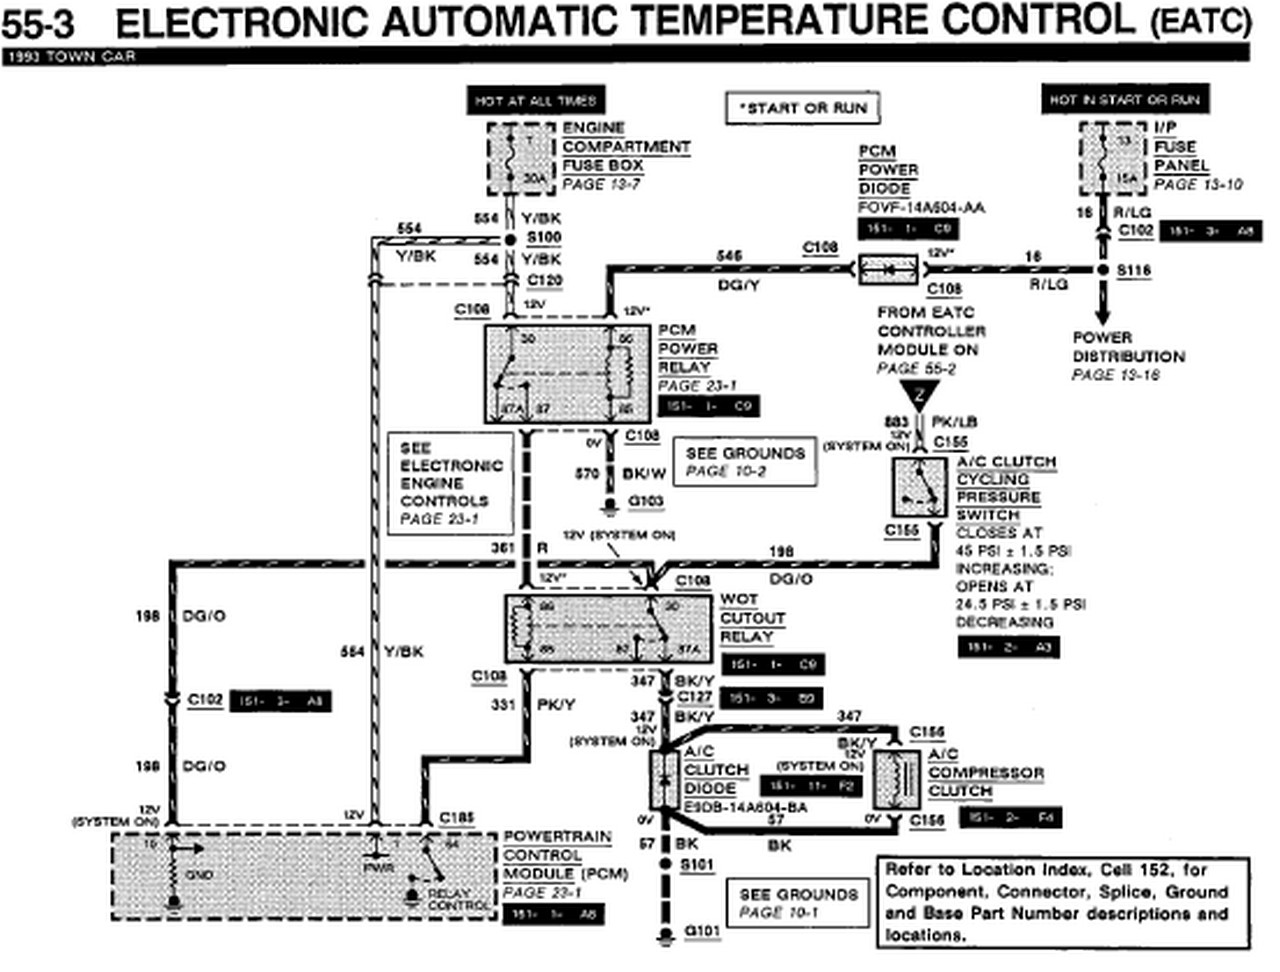 1993 Lincoln Town    Car    EATC    Wiring       DIagram         Auto       Wiring       Diagrams